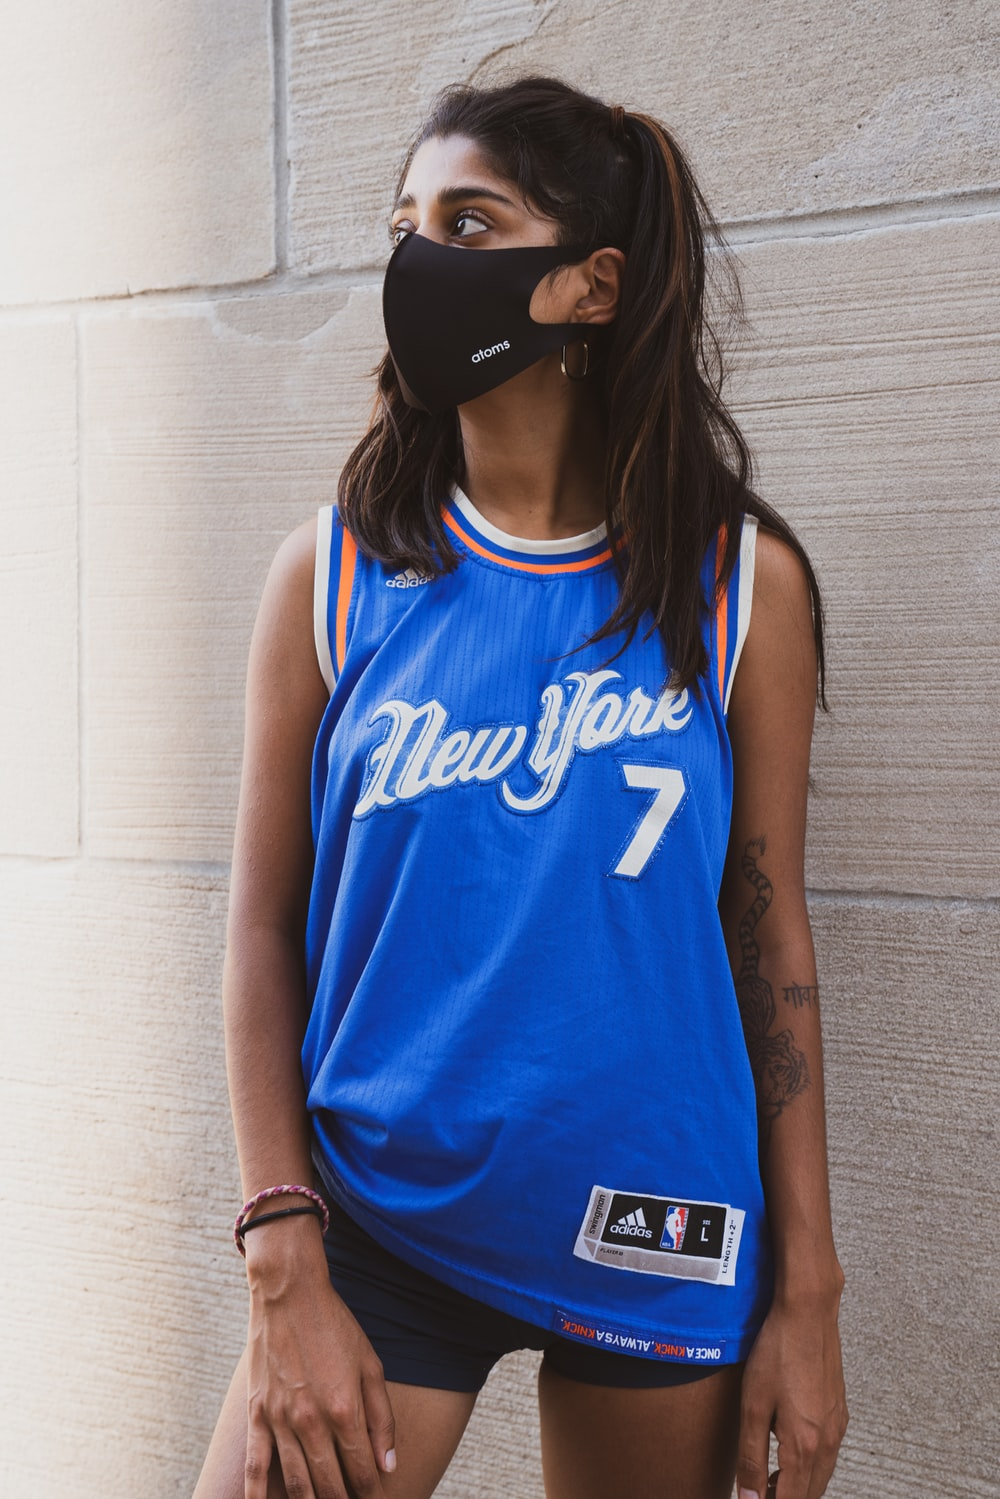 woman in blue and white tank top wearing black cap